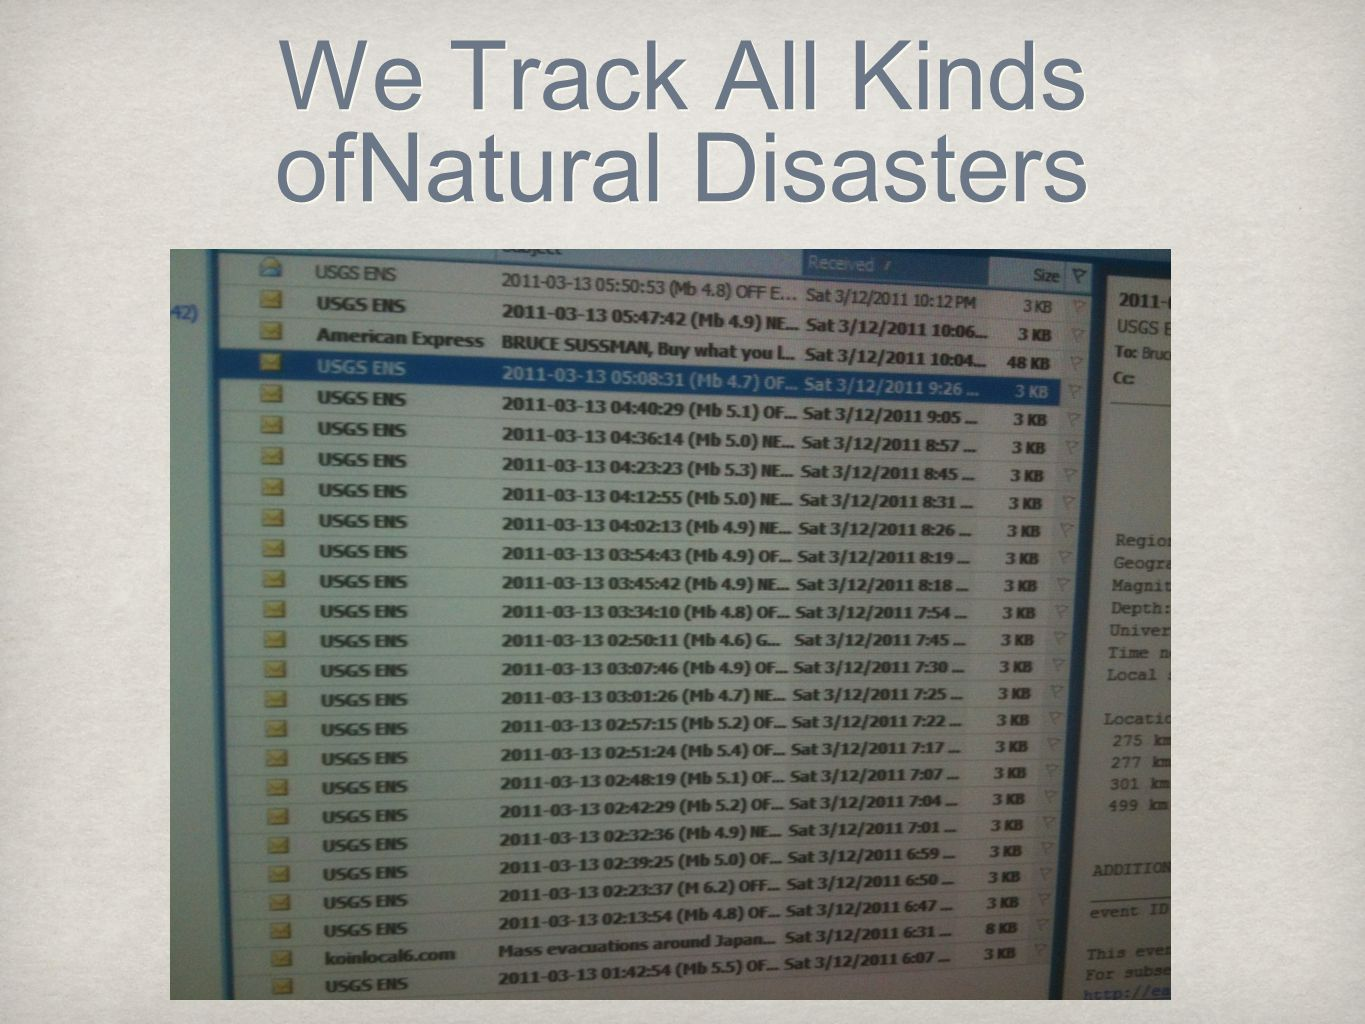 We Track All Kinds ofNatural Disasters